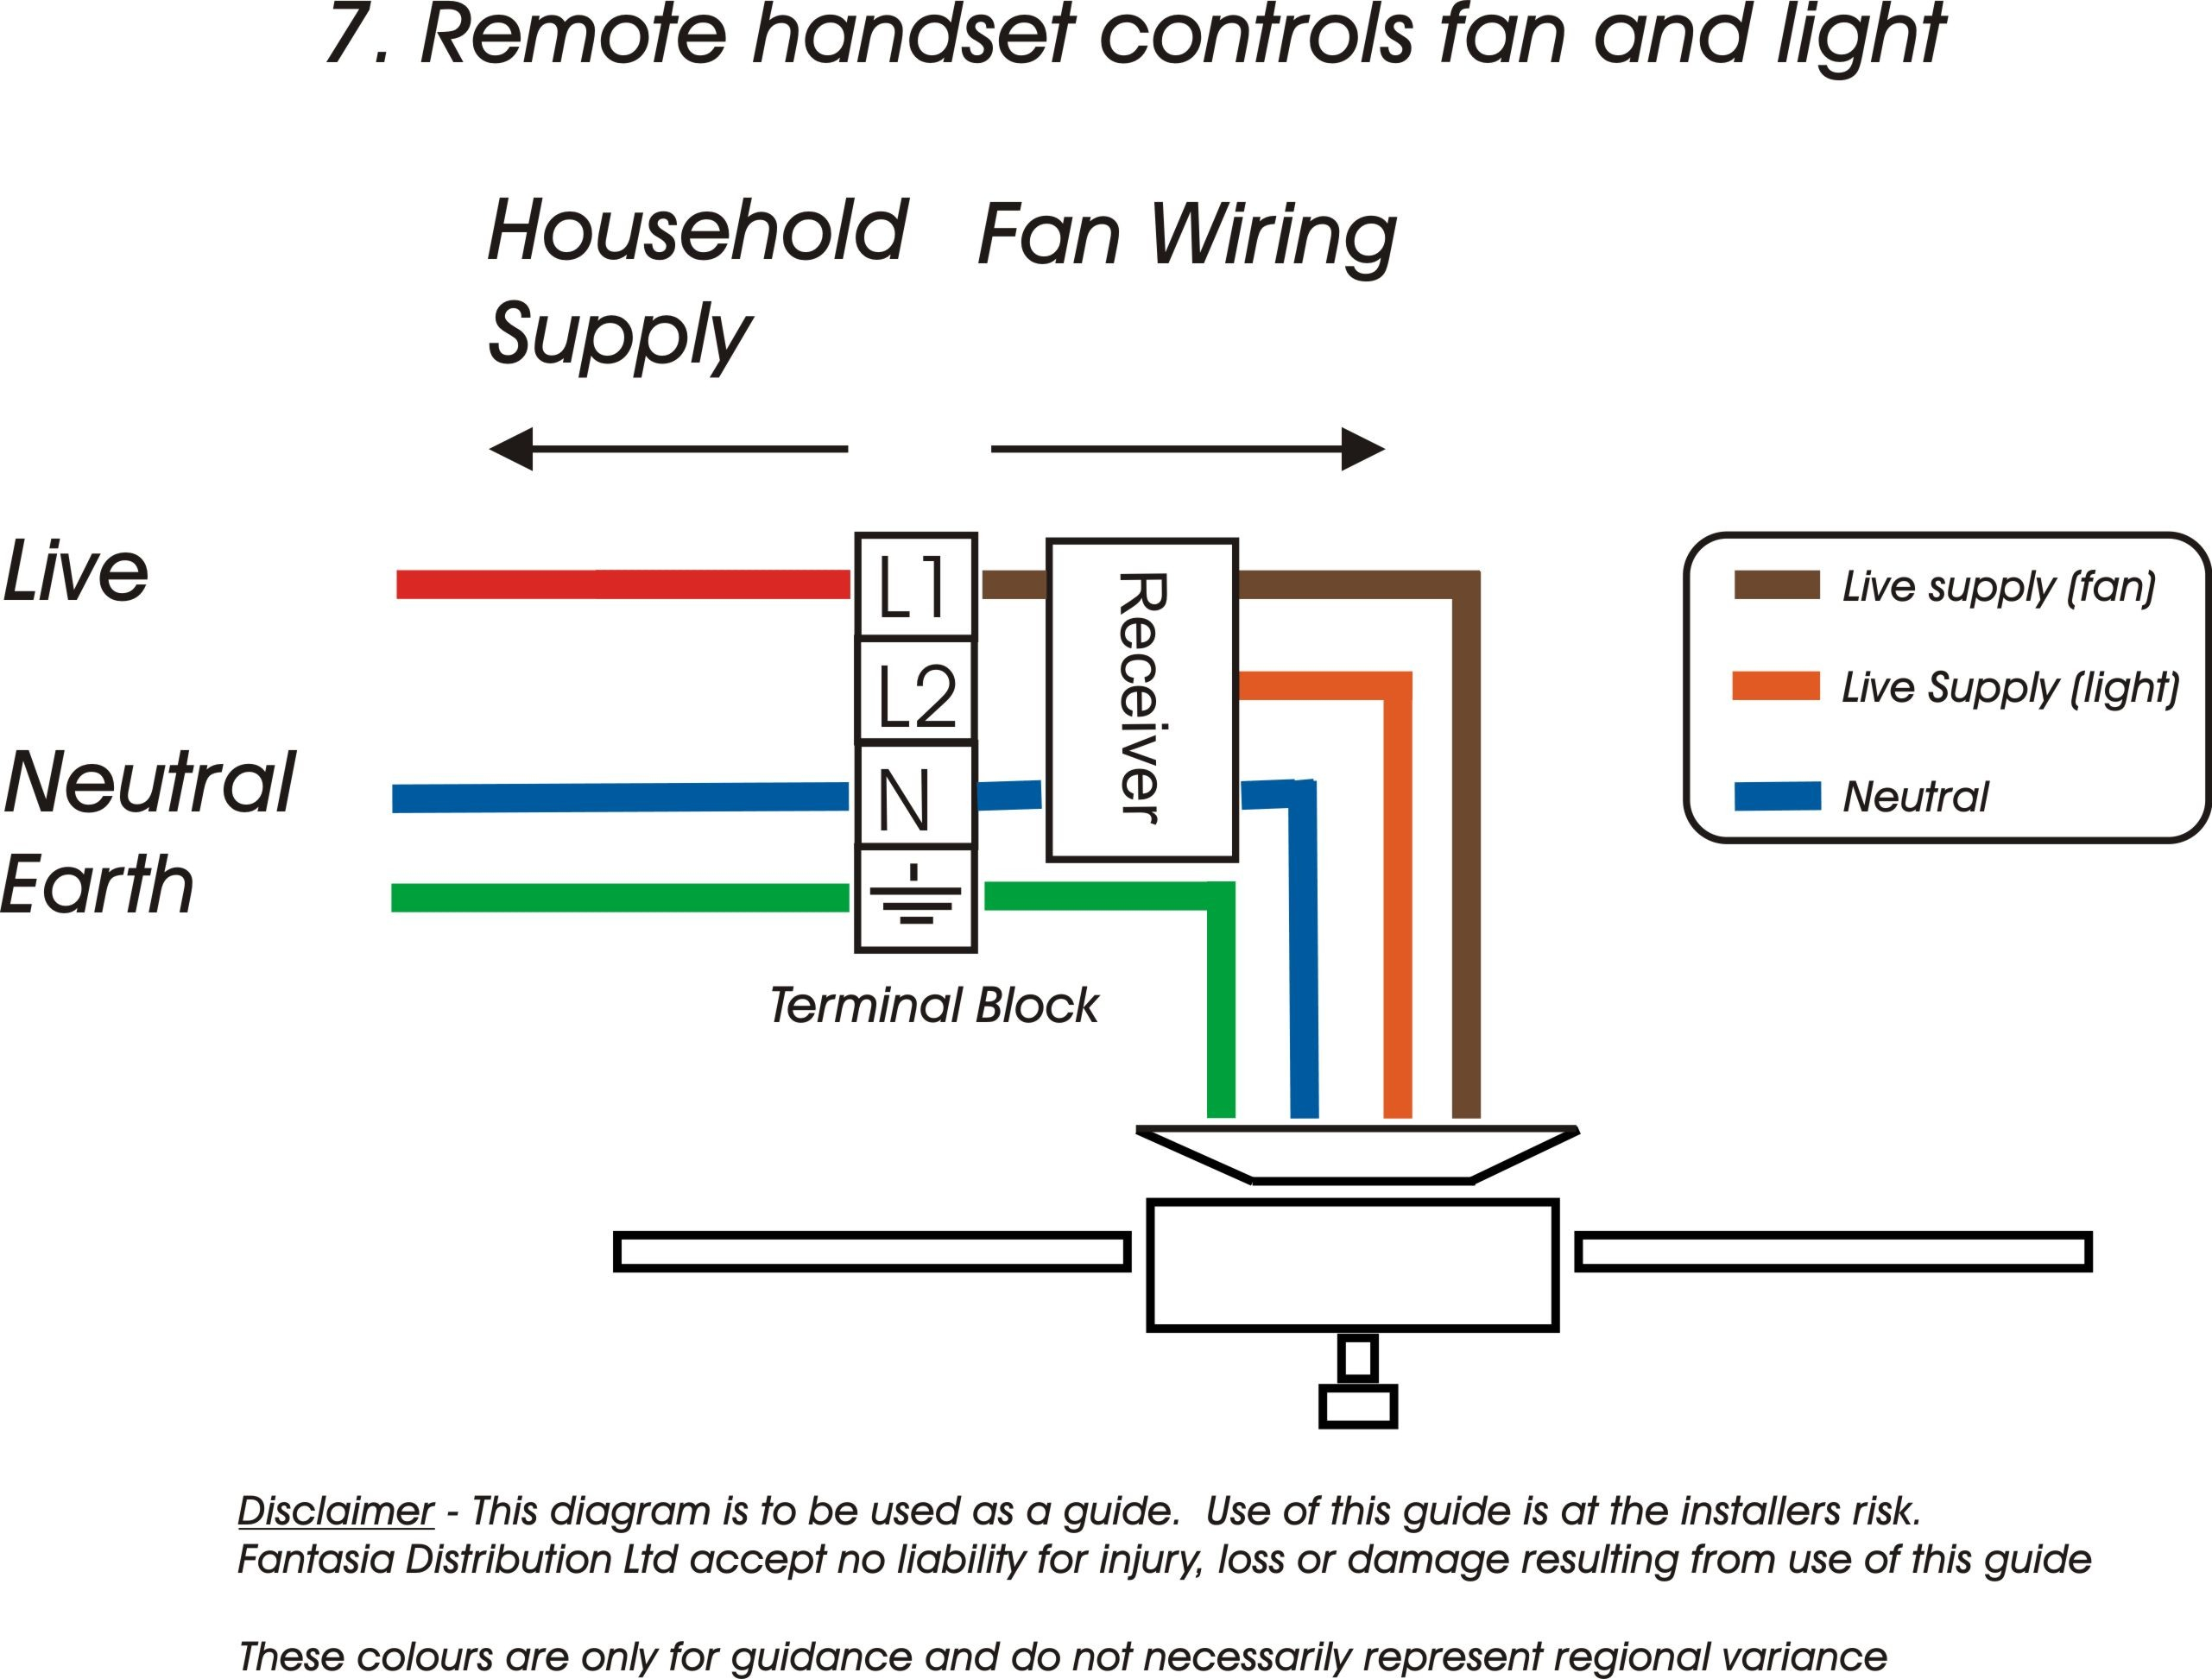 4 wire ceiling fan wiring diagram Download-Dimmer Switch Wiring Diagram Best Ceiling Fan Wiring Diagram Capacitor A with 4 Wires Two 1-g